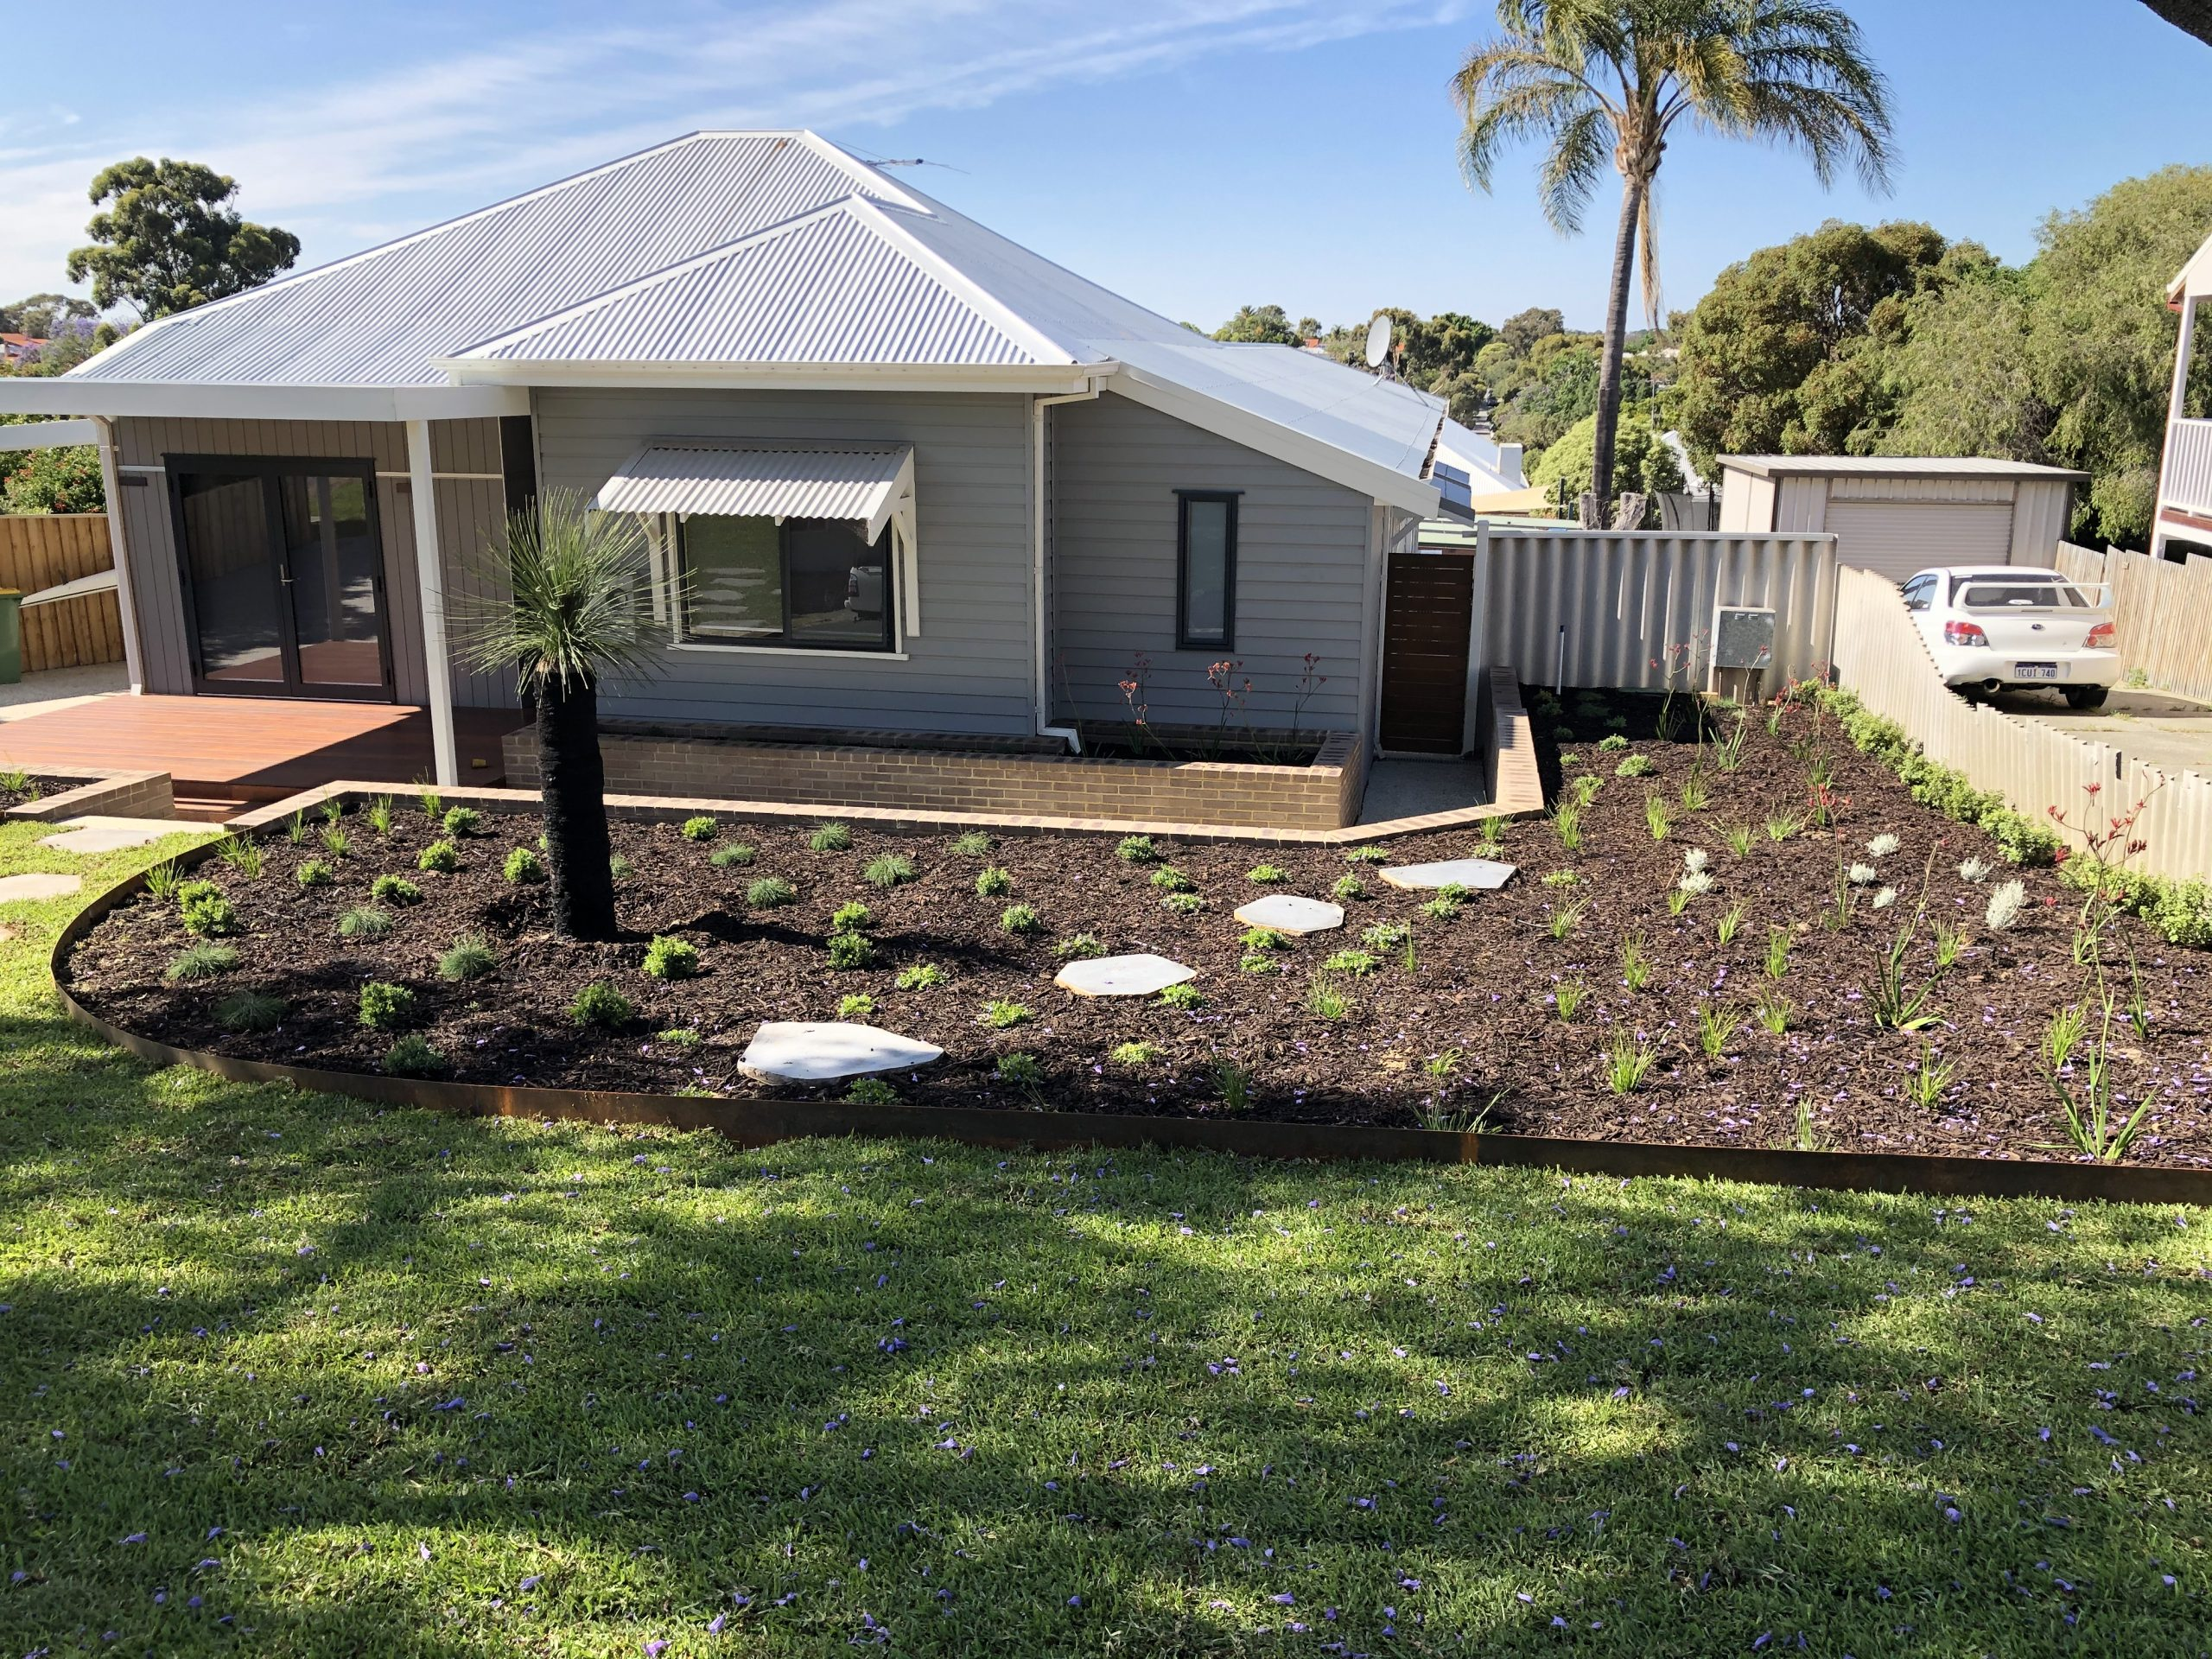 Lawn Irrigation Services in Canberra in Canberra, ACT